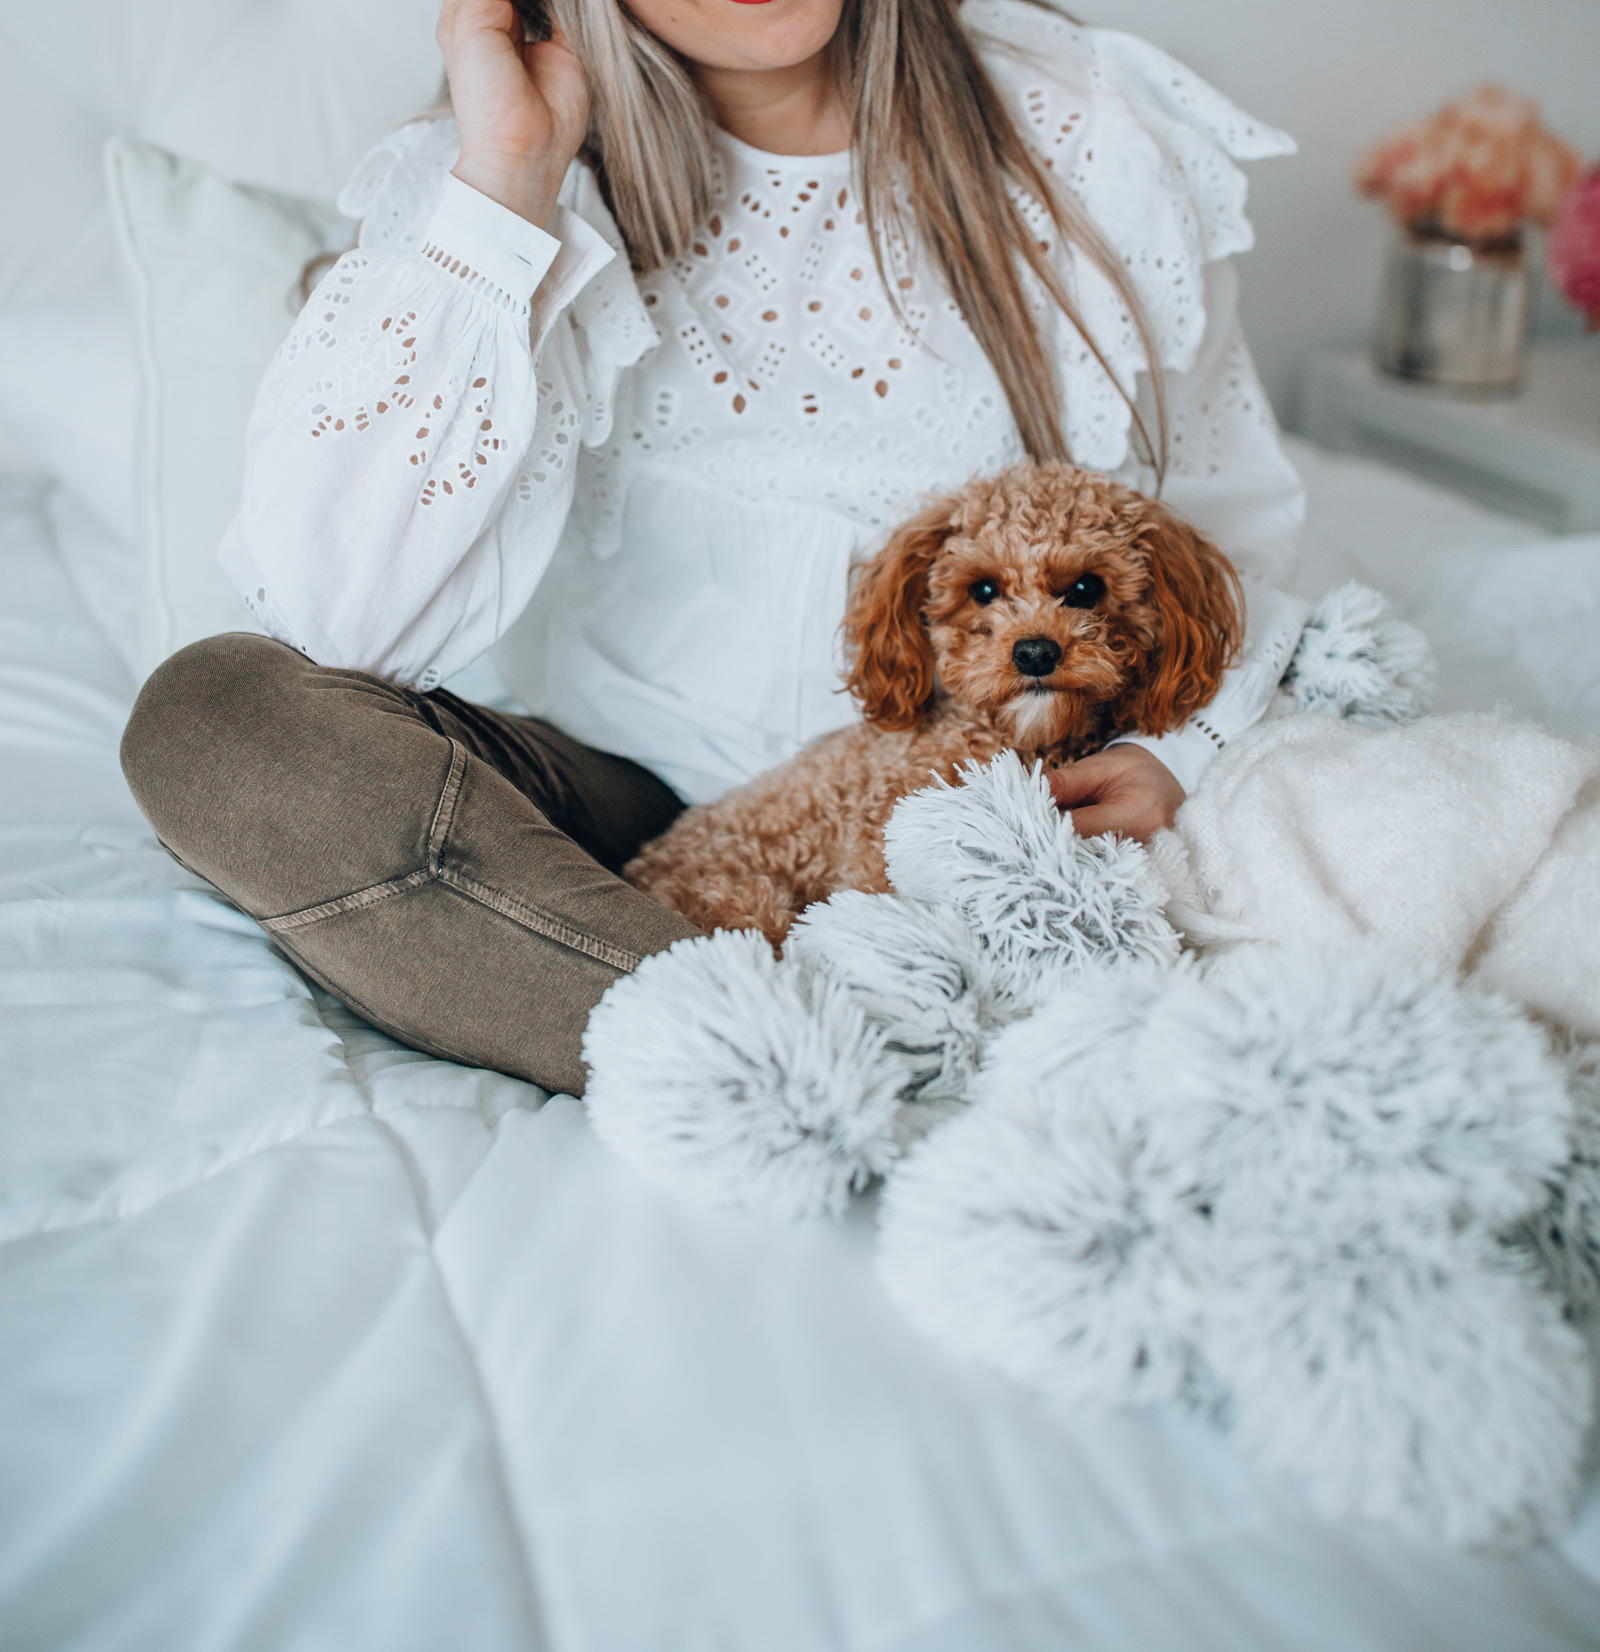 Chicago Motherhood Blogger Happily Inspired is sharing the health benefits of dogs on babies with freshpet food! Be sure to check out the benefits.